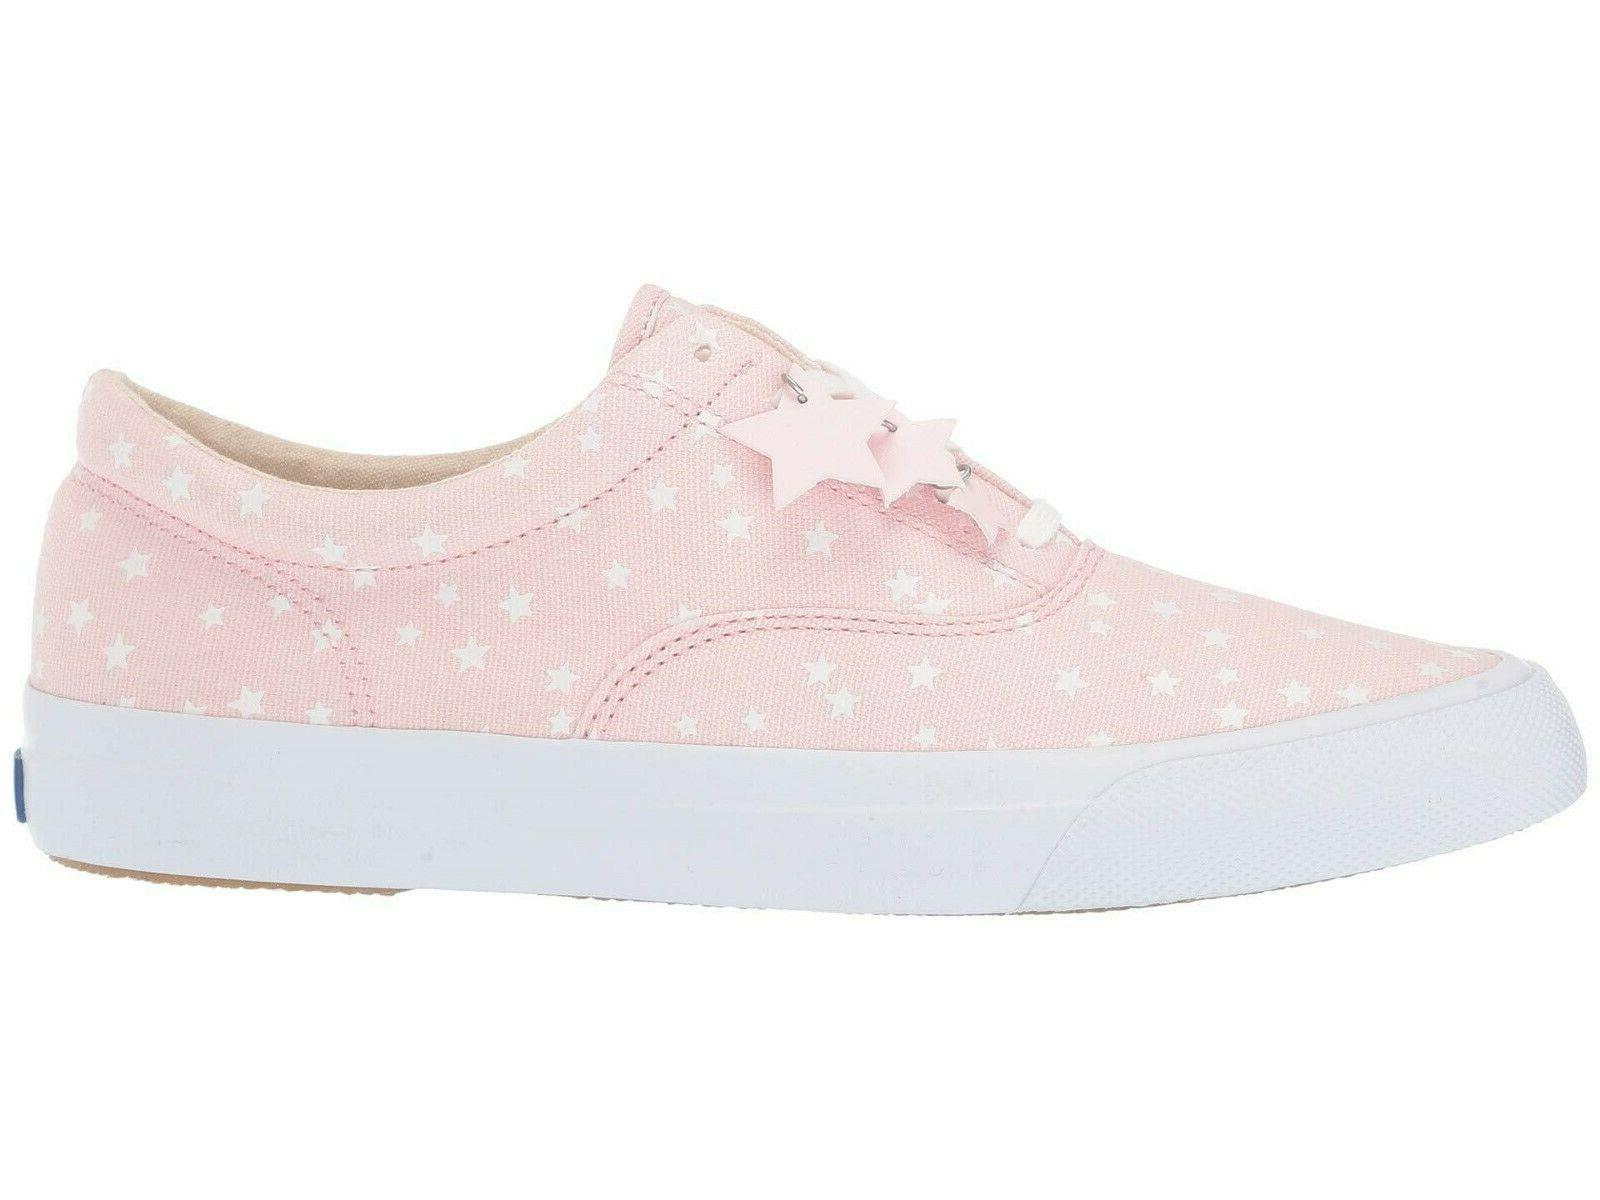 Keds Anchor In The Dark Sneakers, Pink